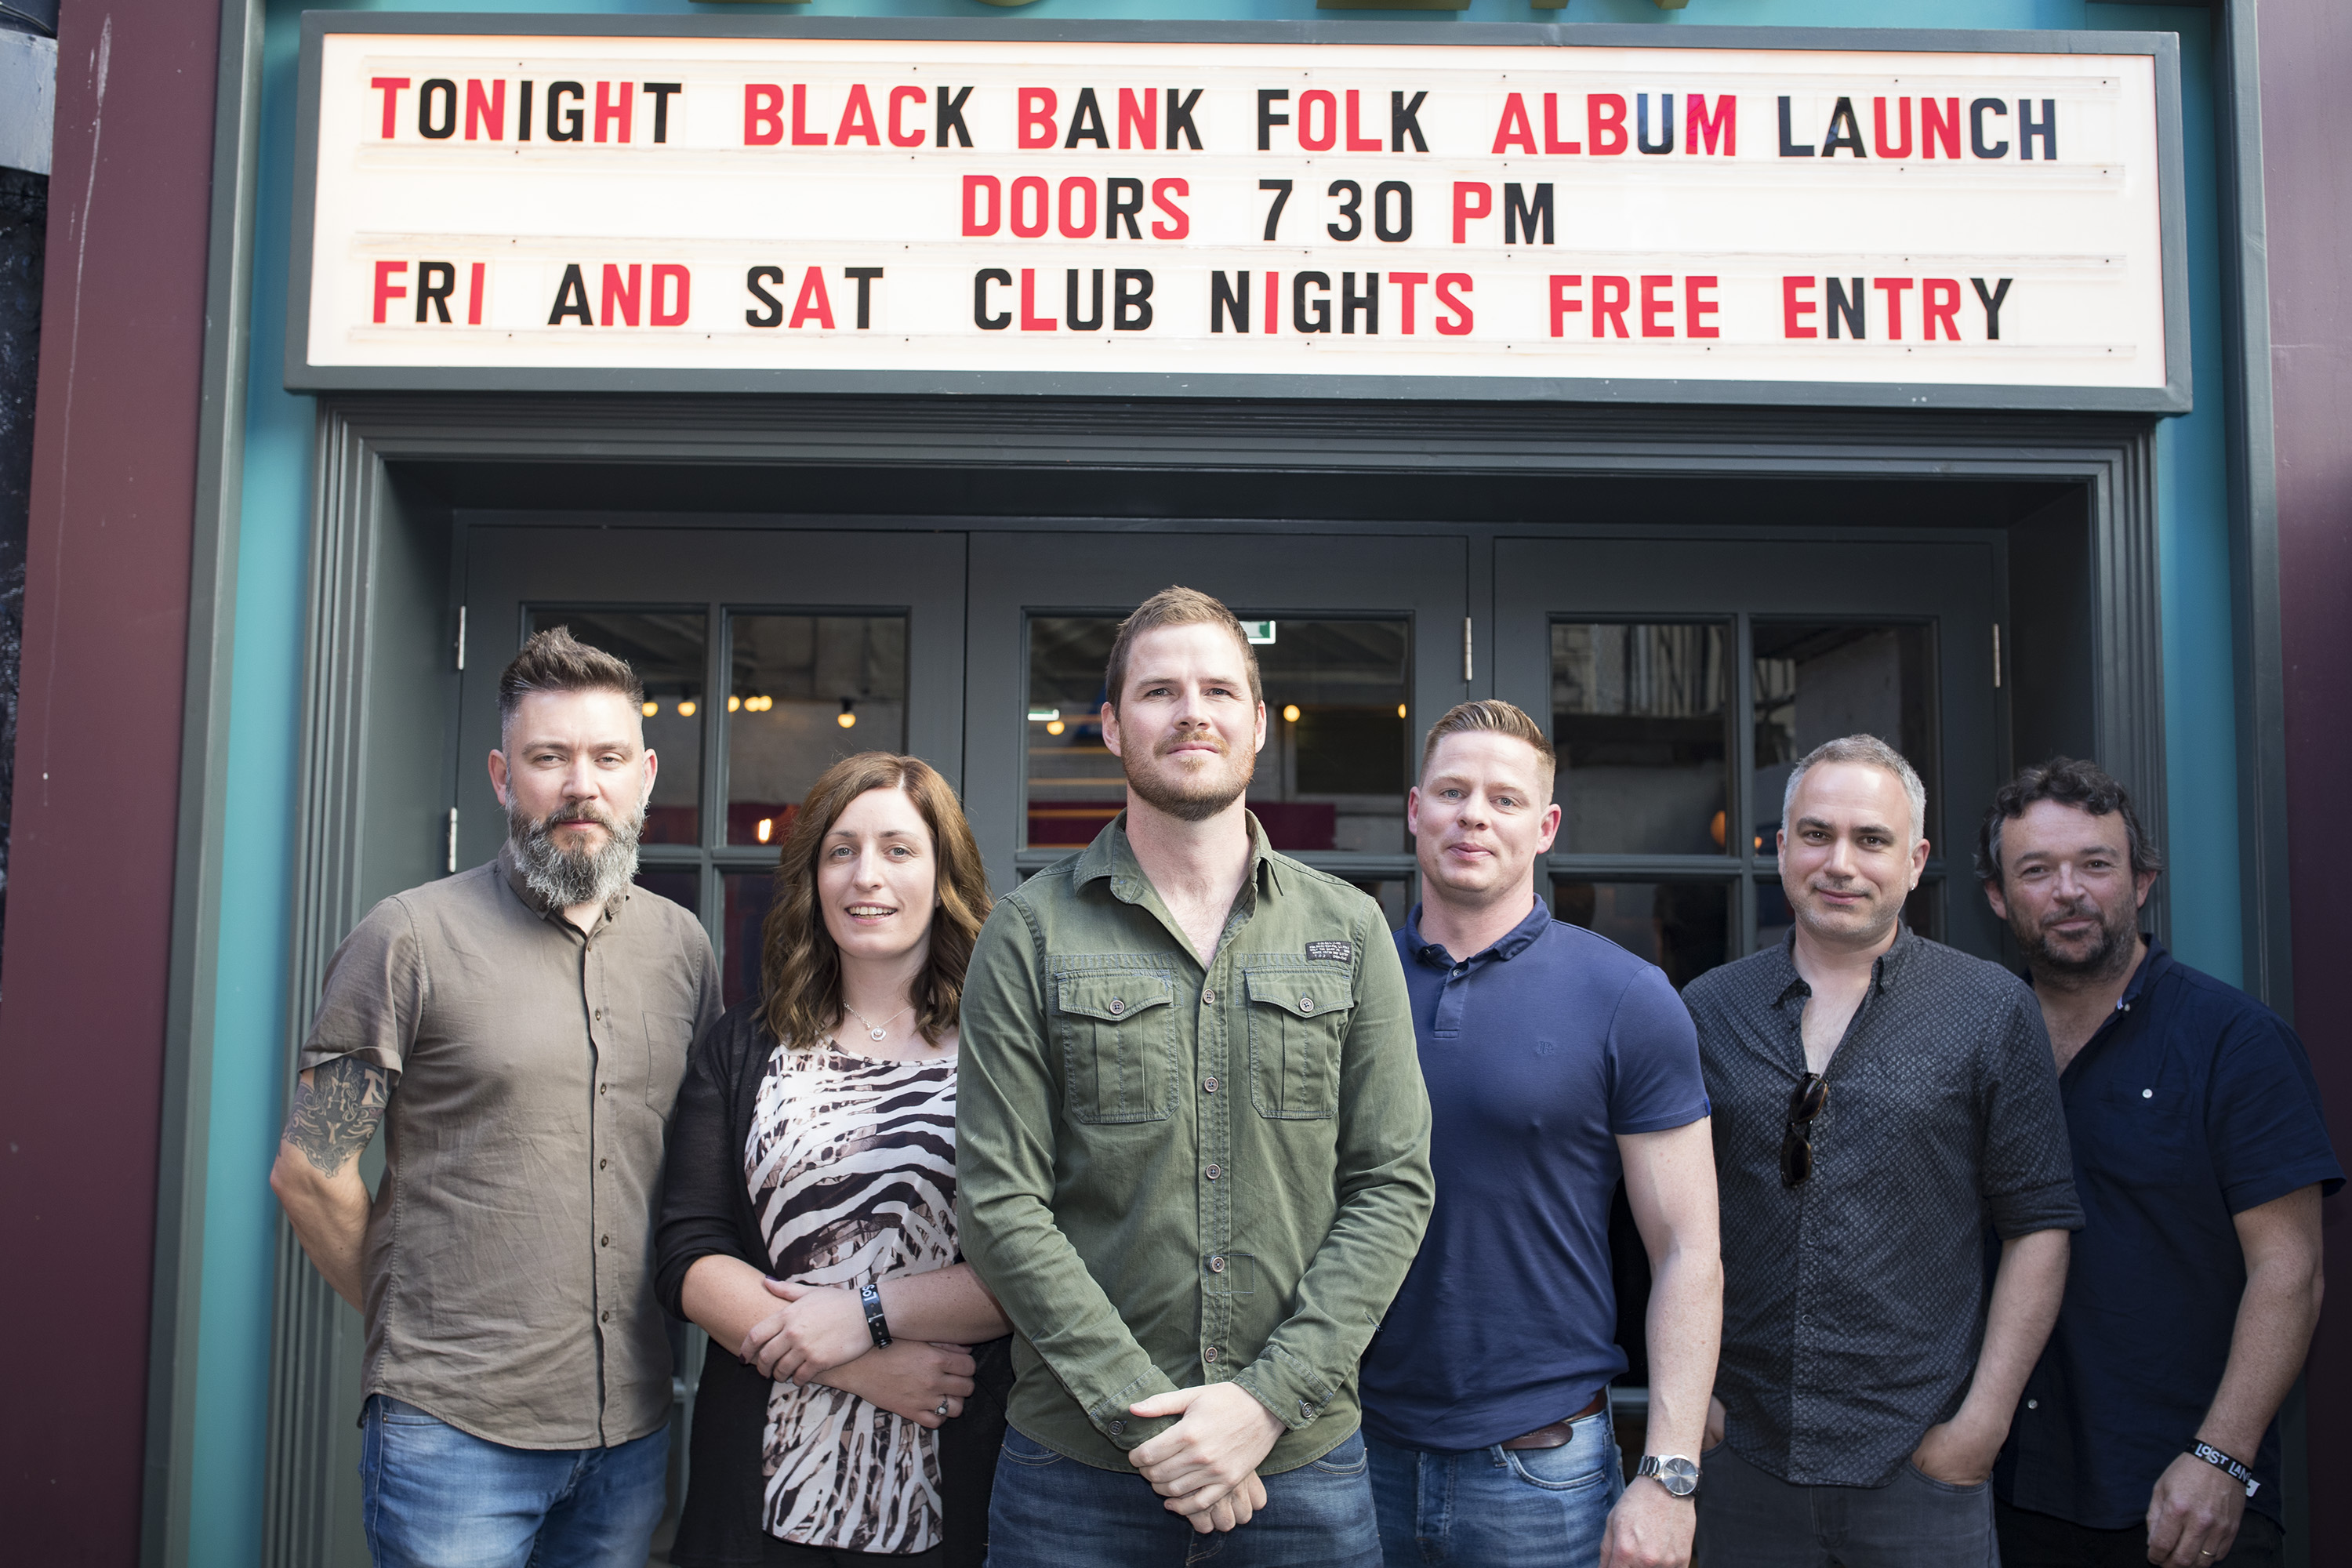 BLACK BANK FOLK-Album Launch